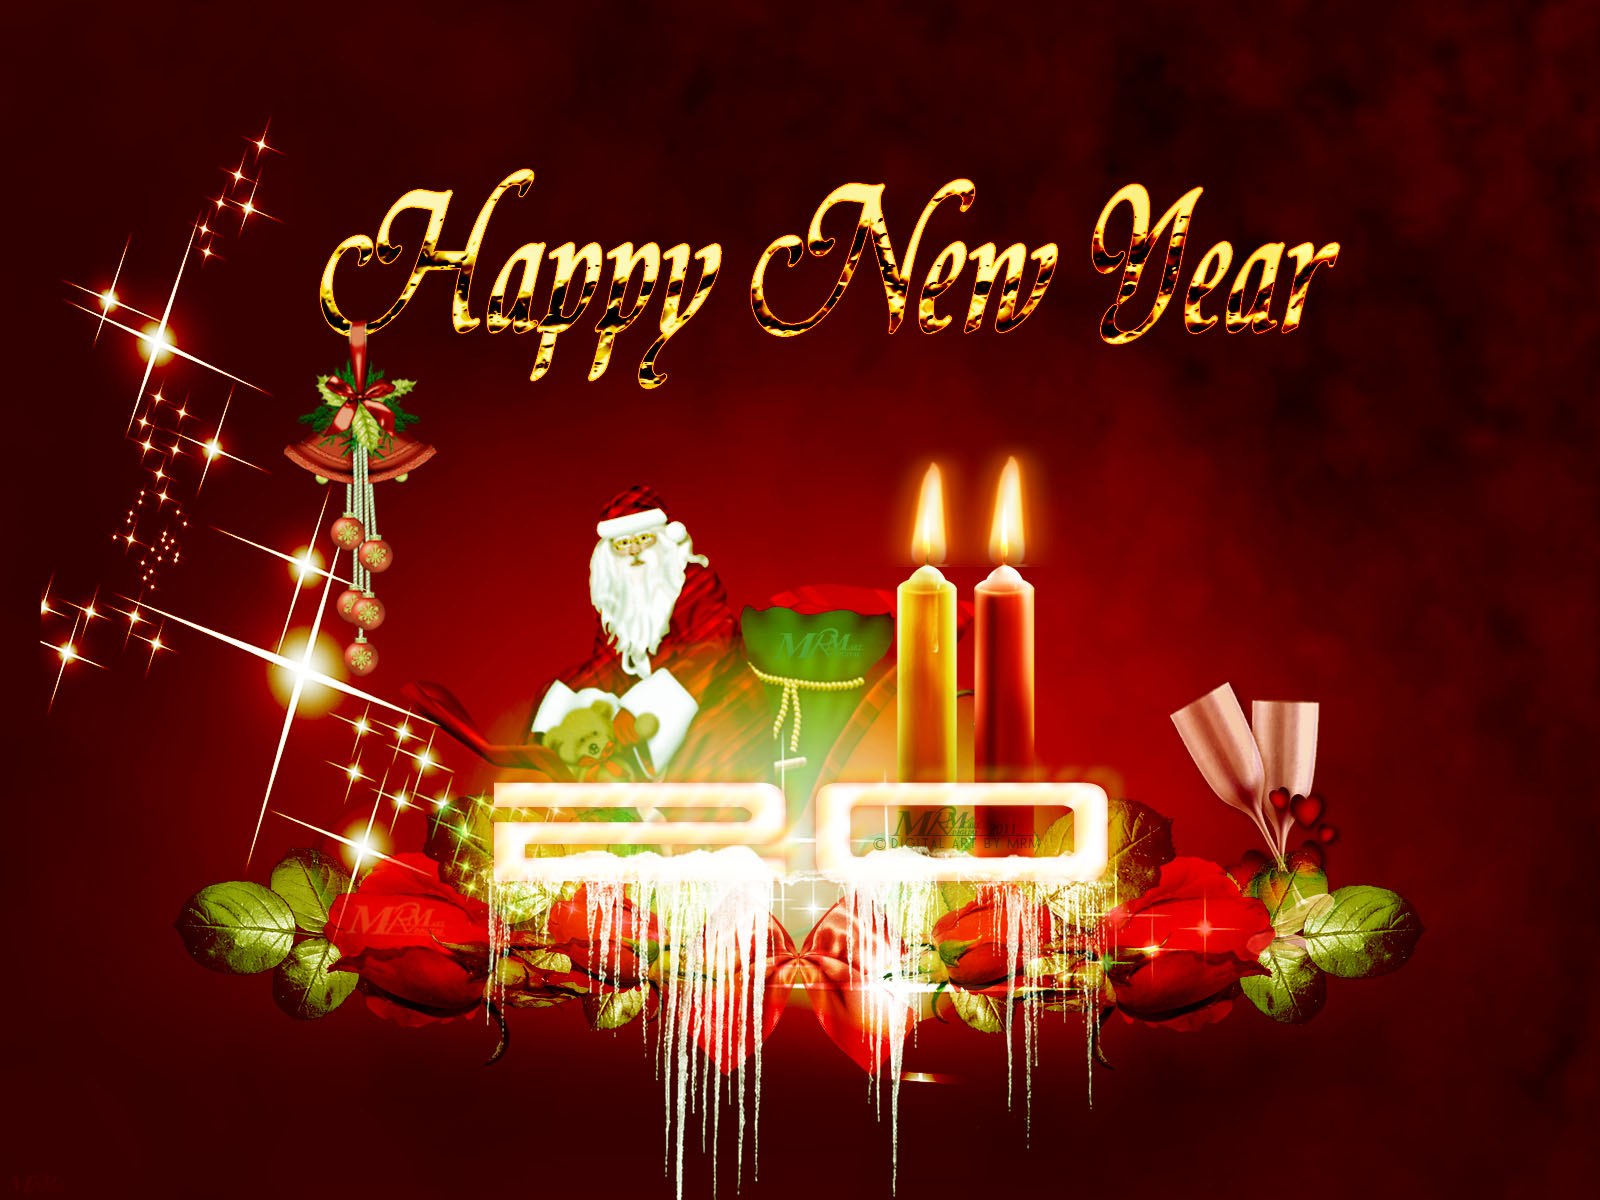 Happy New Year Greeting Cards Wallpapers Wishes. 1600 x 1200.Chinese New Year 2010 Greeting E-cards